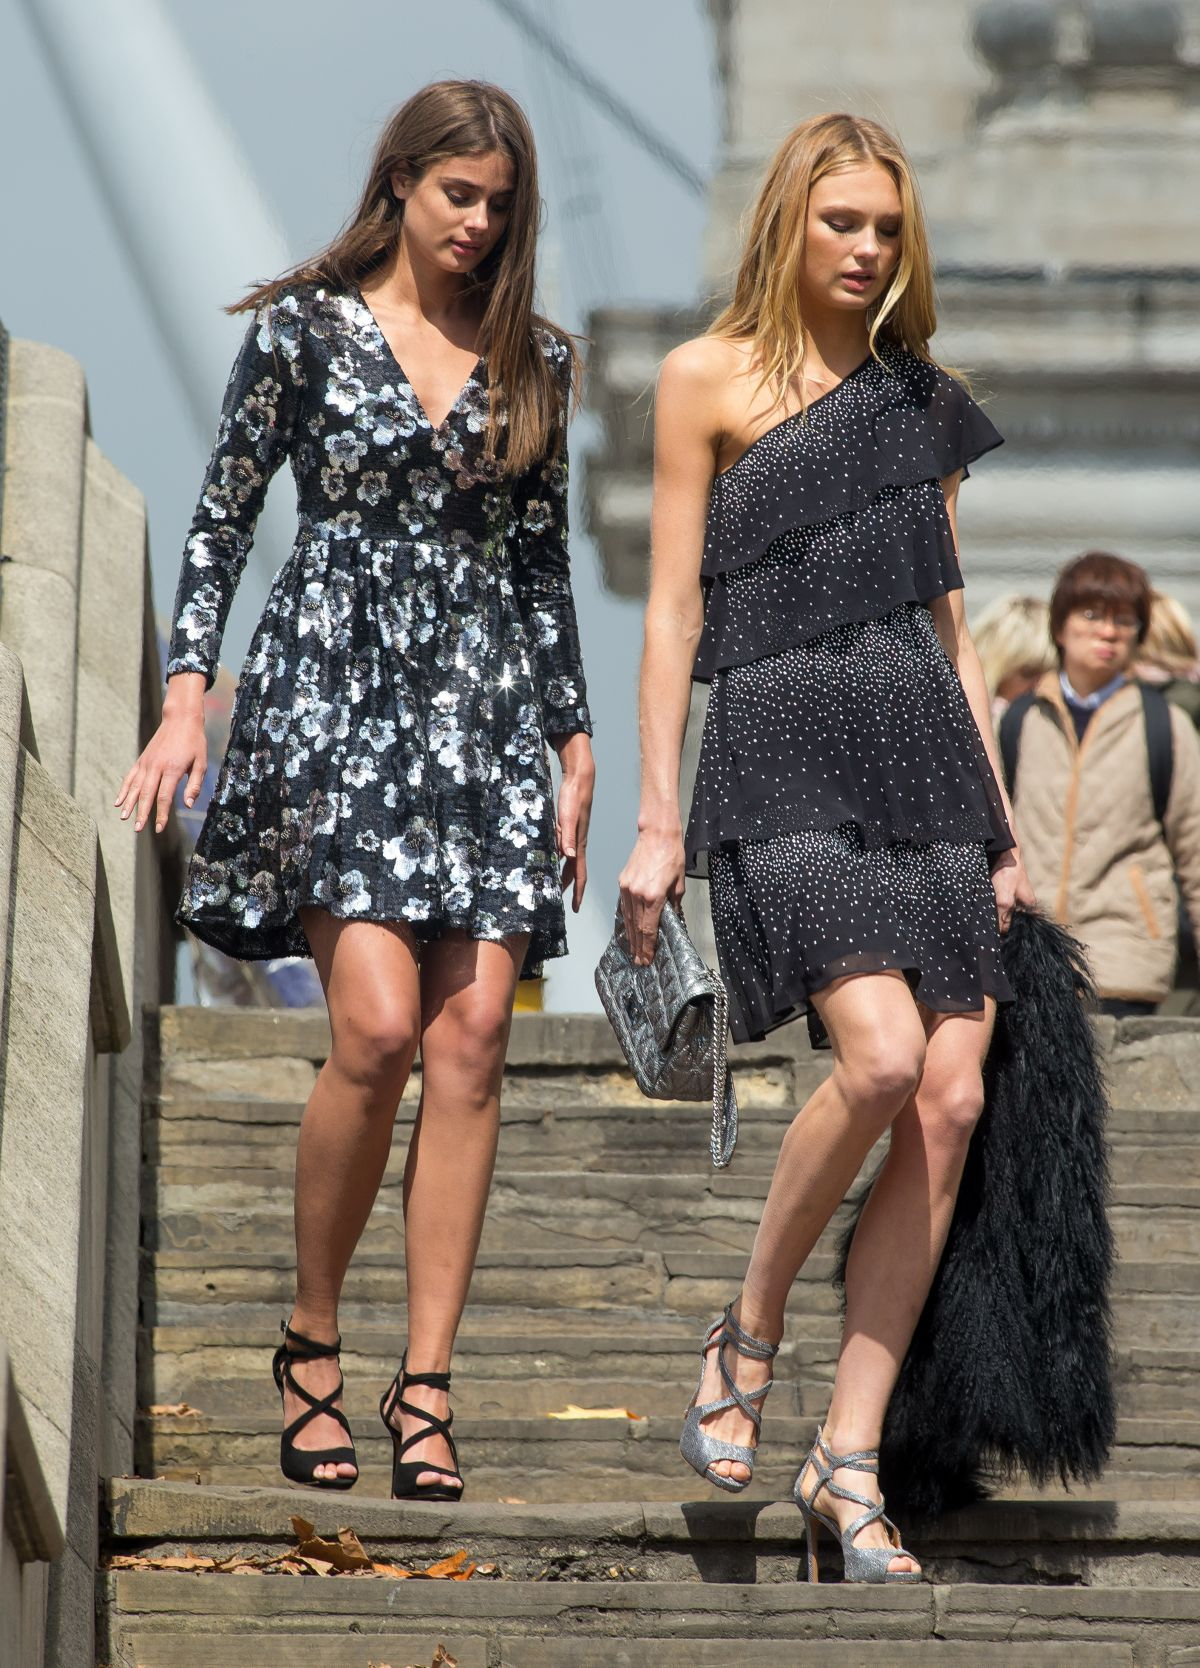 TAYLOR HILL and ROMEE STRIJD at a Photoshoot on Westminster Bridge in London 04/26/2017